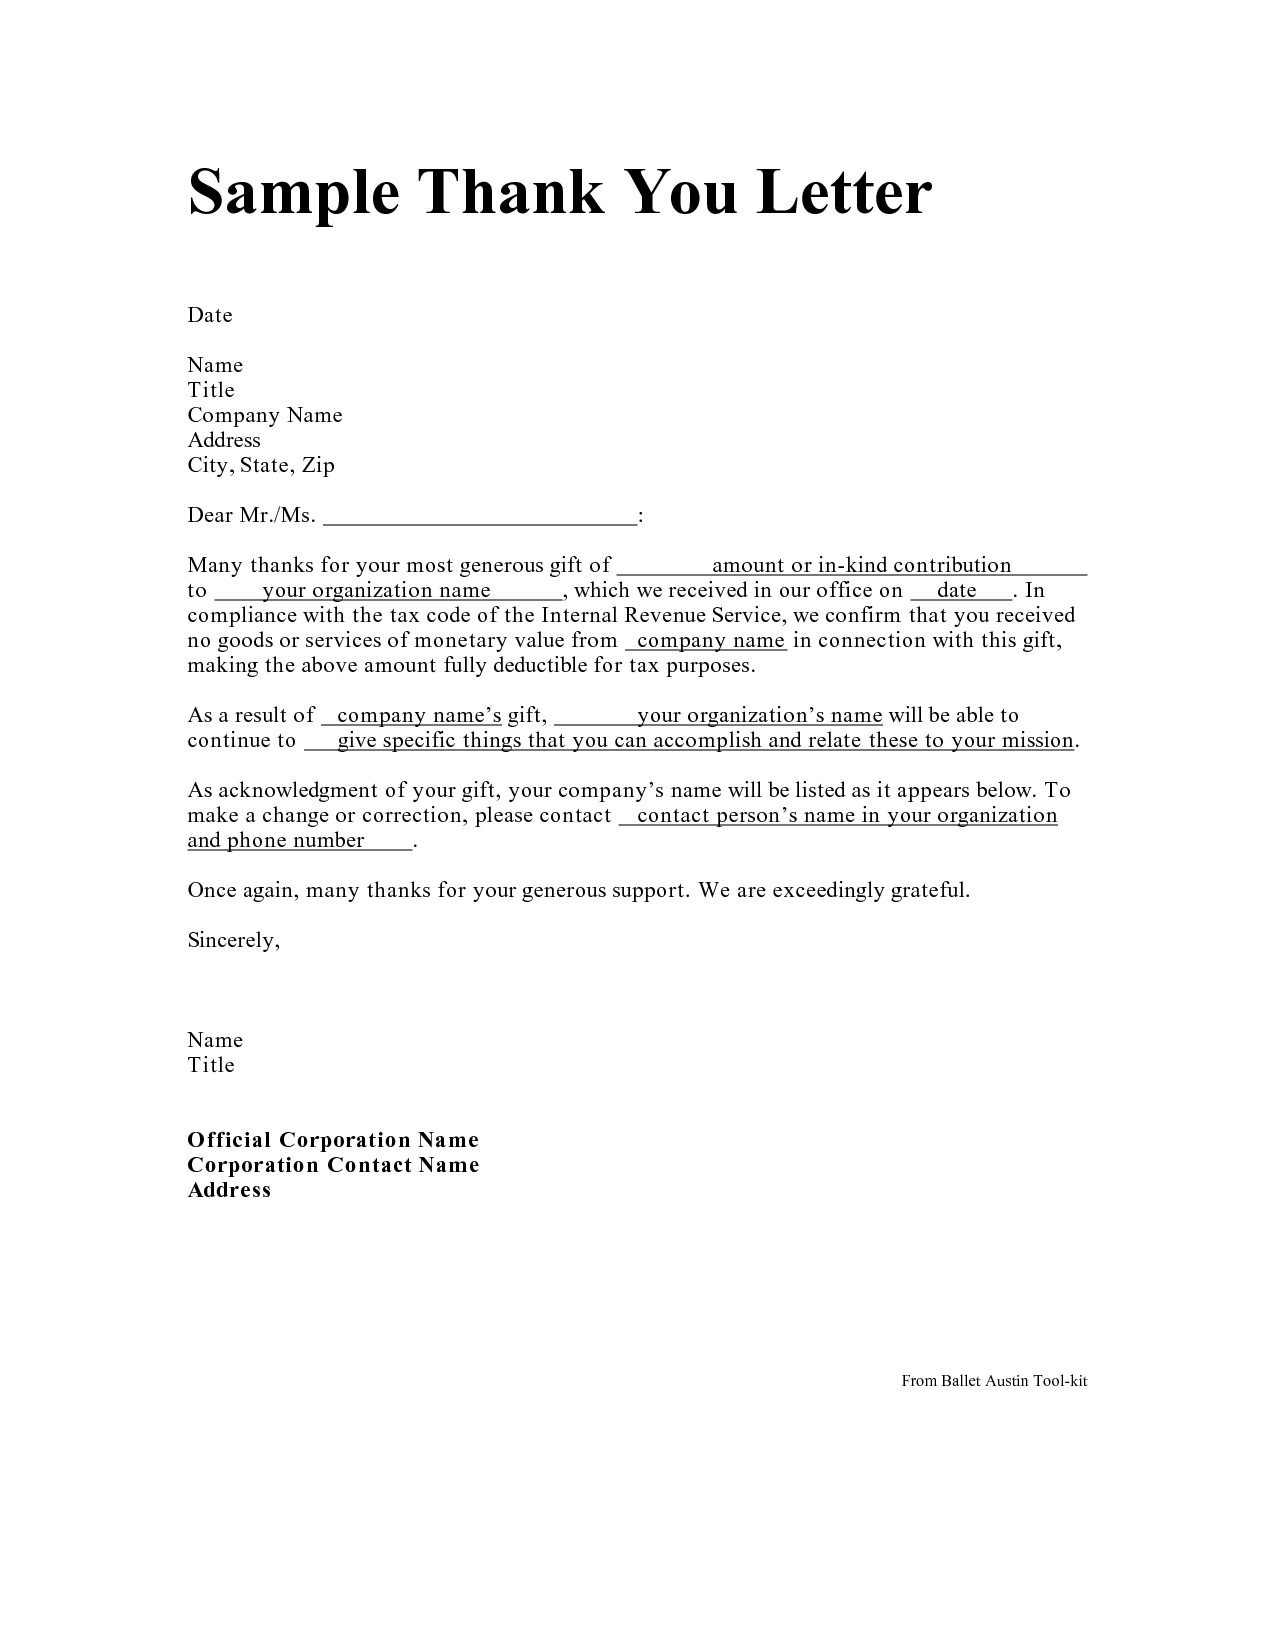 Estate Planning Letter Of Instruction Template - Personal Thank You Letter Personal Thank You Letter Samples